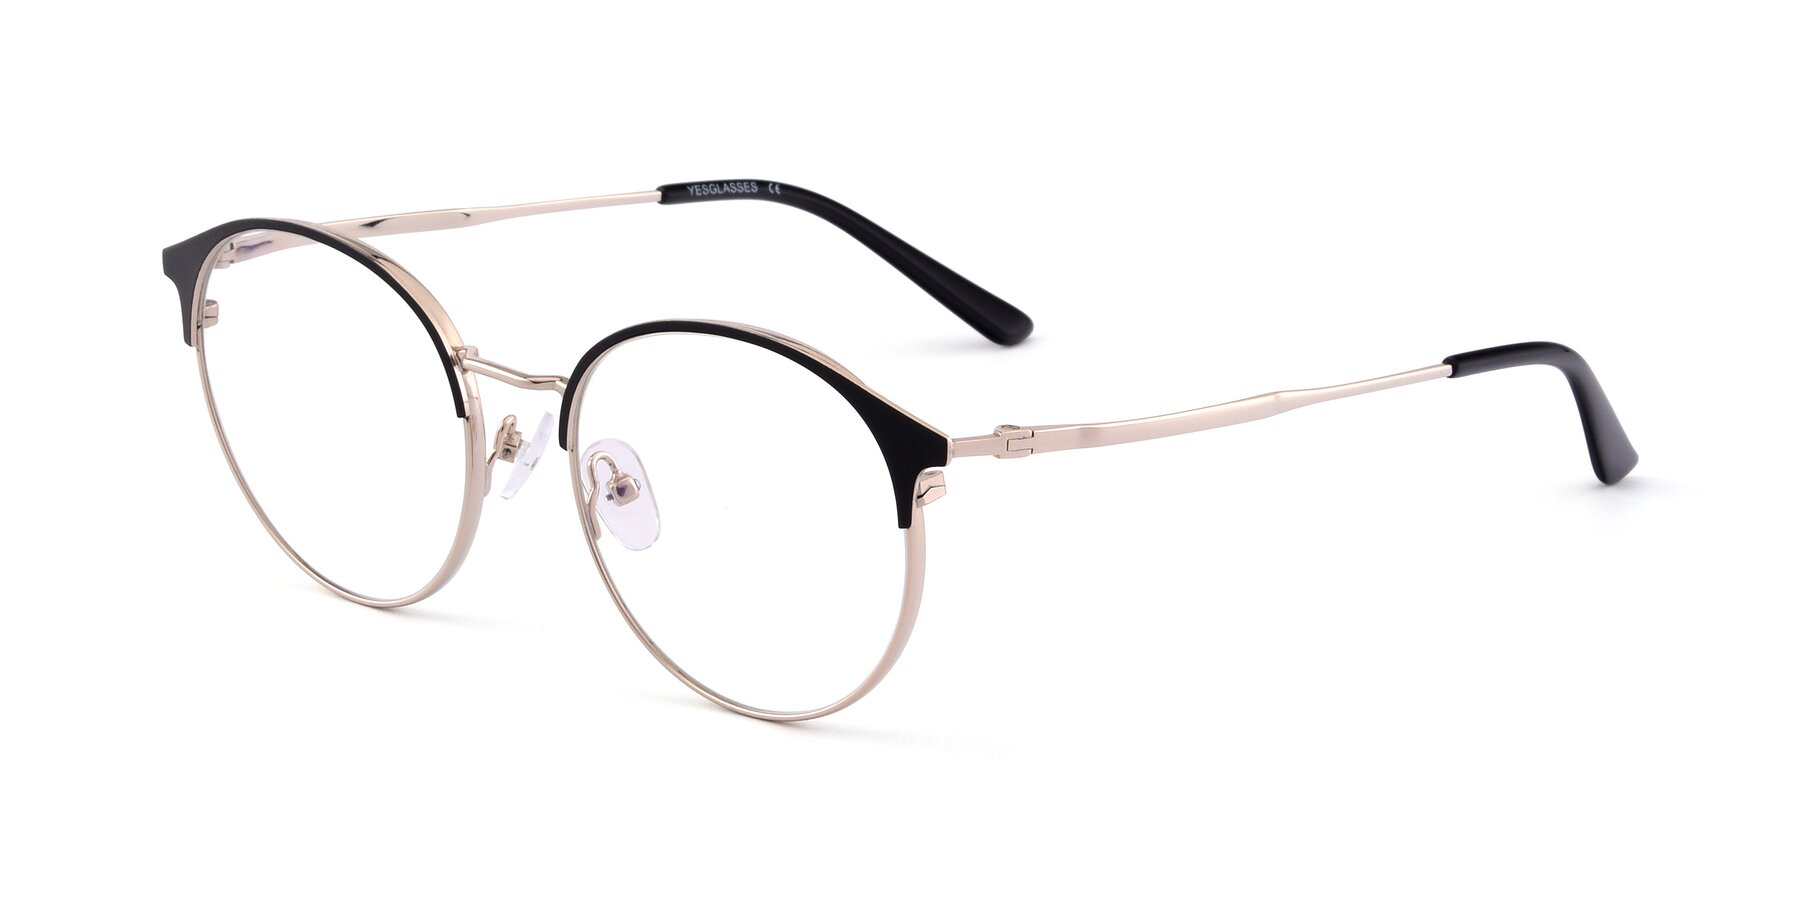 Angle of Berkley in Black-Gold with Clear Blue Light Blocking Lenses